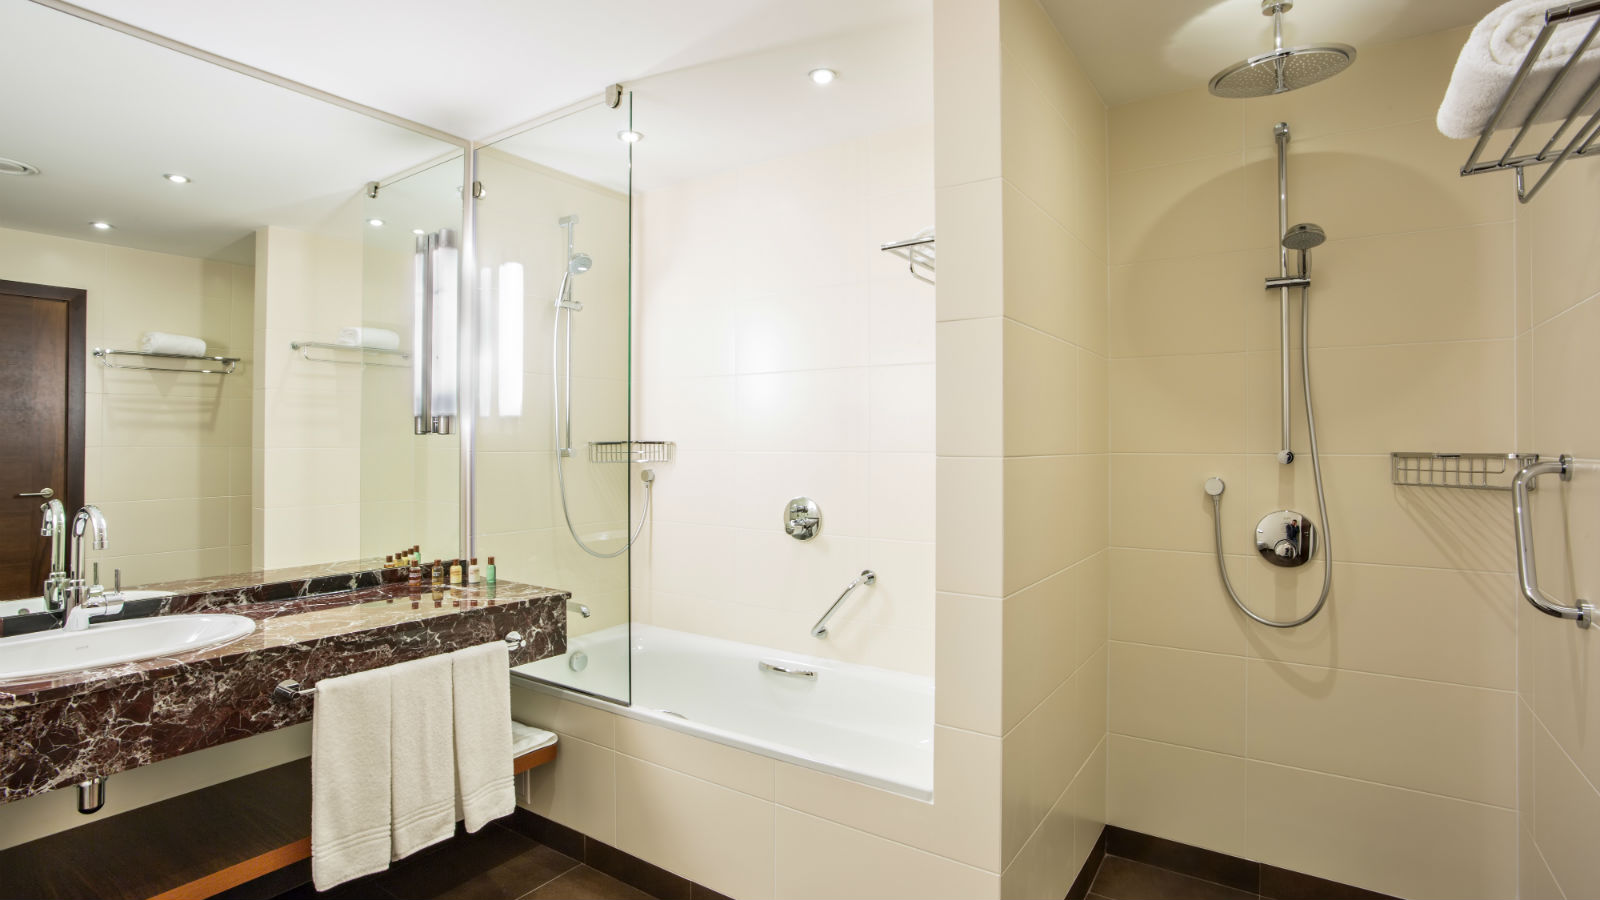 Spacious bathroom with signature Shine for Sheraton amenities at Sheraton Moscow Sheremetyevo